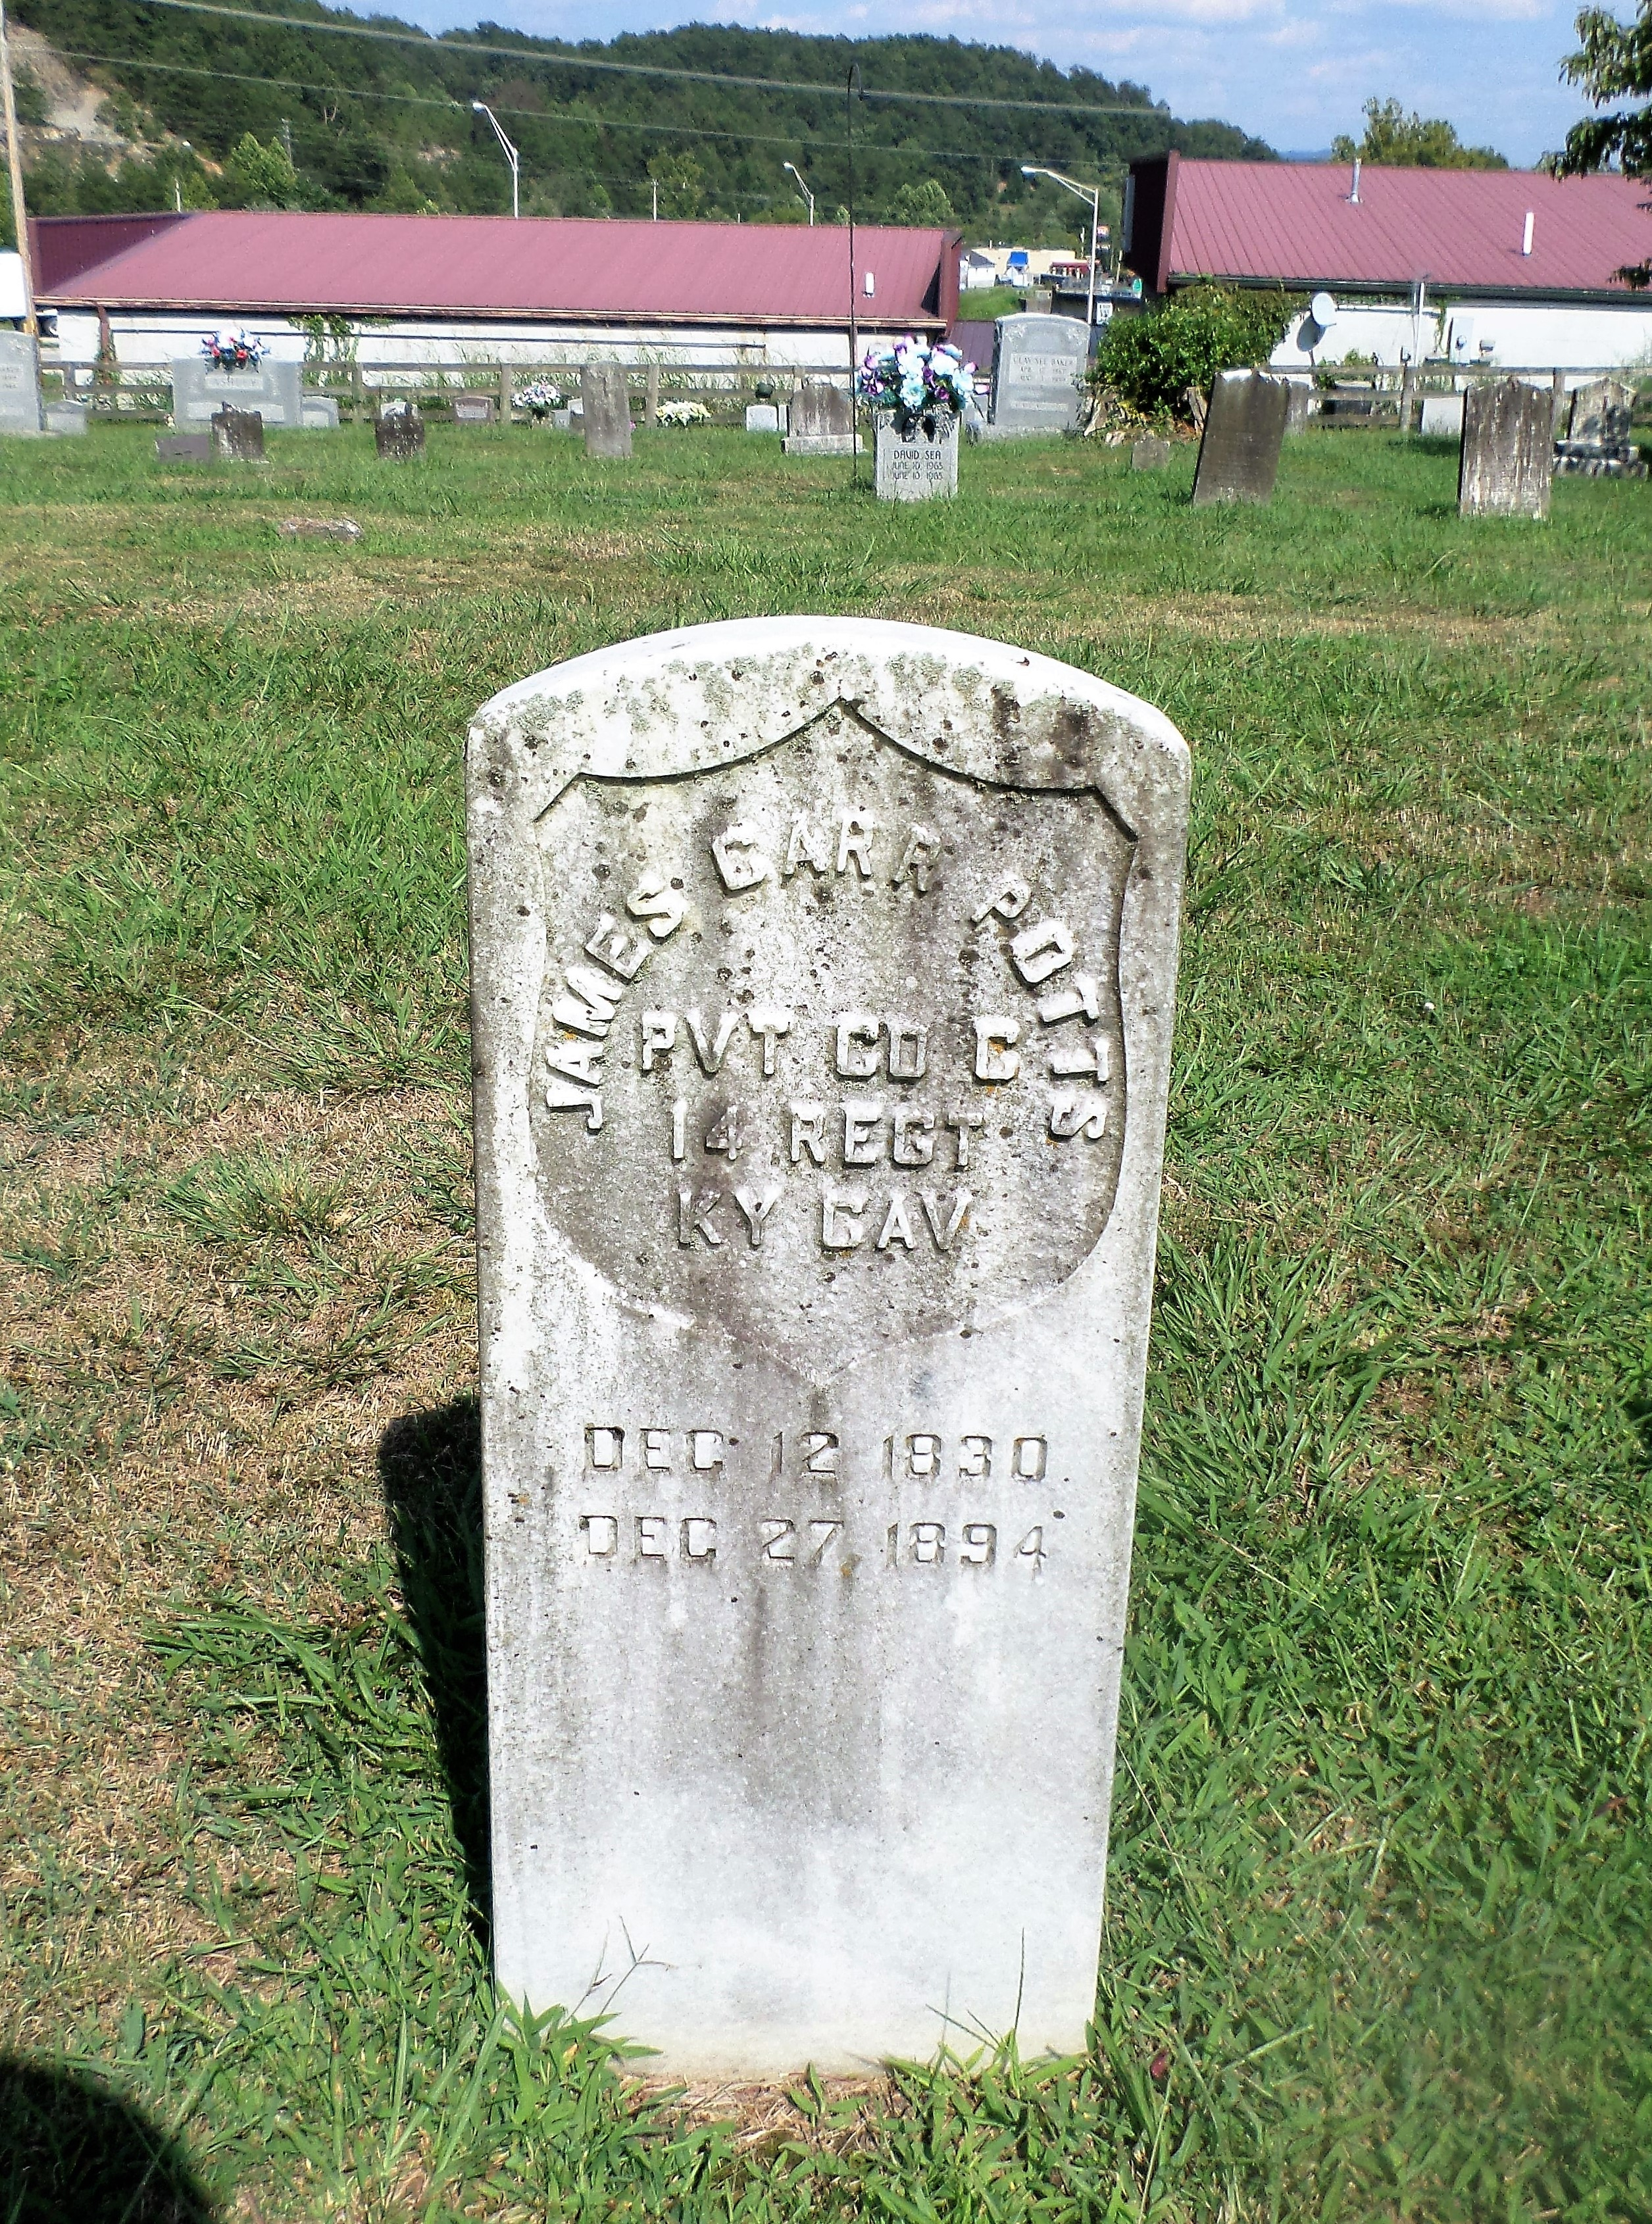 e9486cbafc131 James Carr Potts, Private, Co. C, 14th Regiment Kentucky Cavalry. December  12, 1830 – December 27, 1894. Powell's Valley Baptist Cemetery, Powell  County, ...